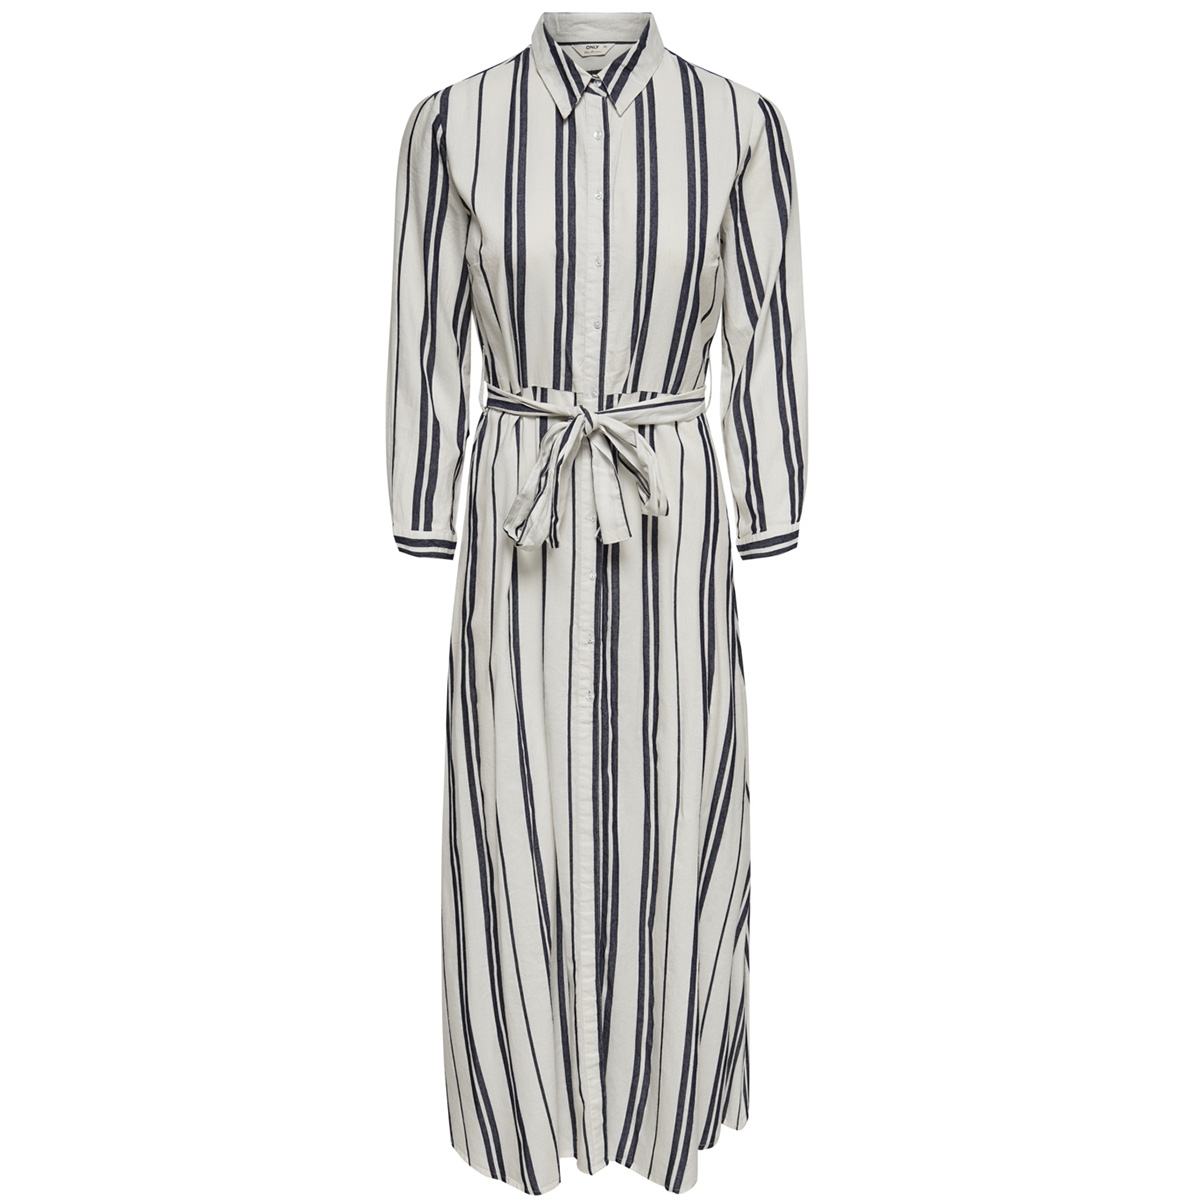 onlnadya 7/8 sleeve stripe dnm dres 15176955 only jurk cloud dancer/night sky